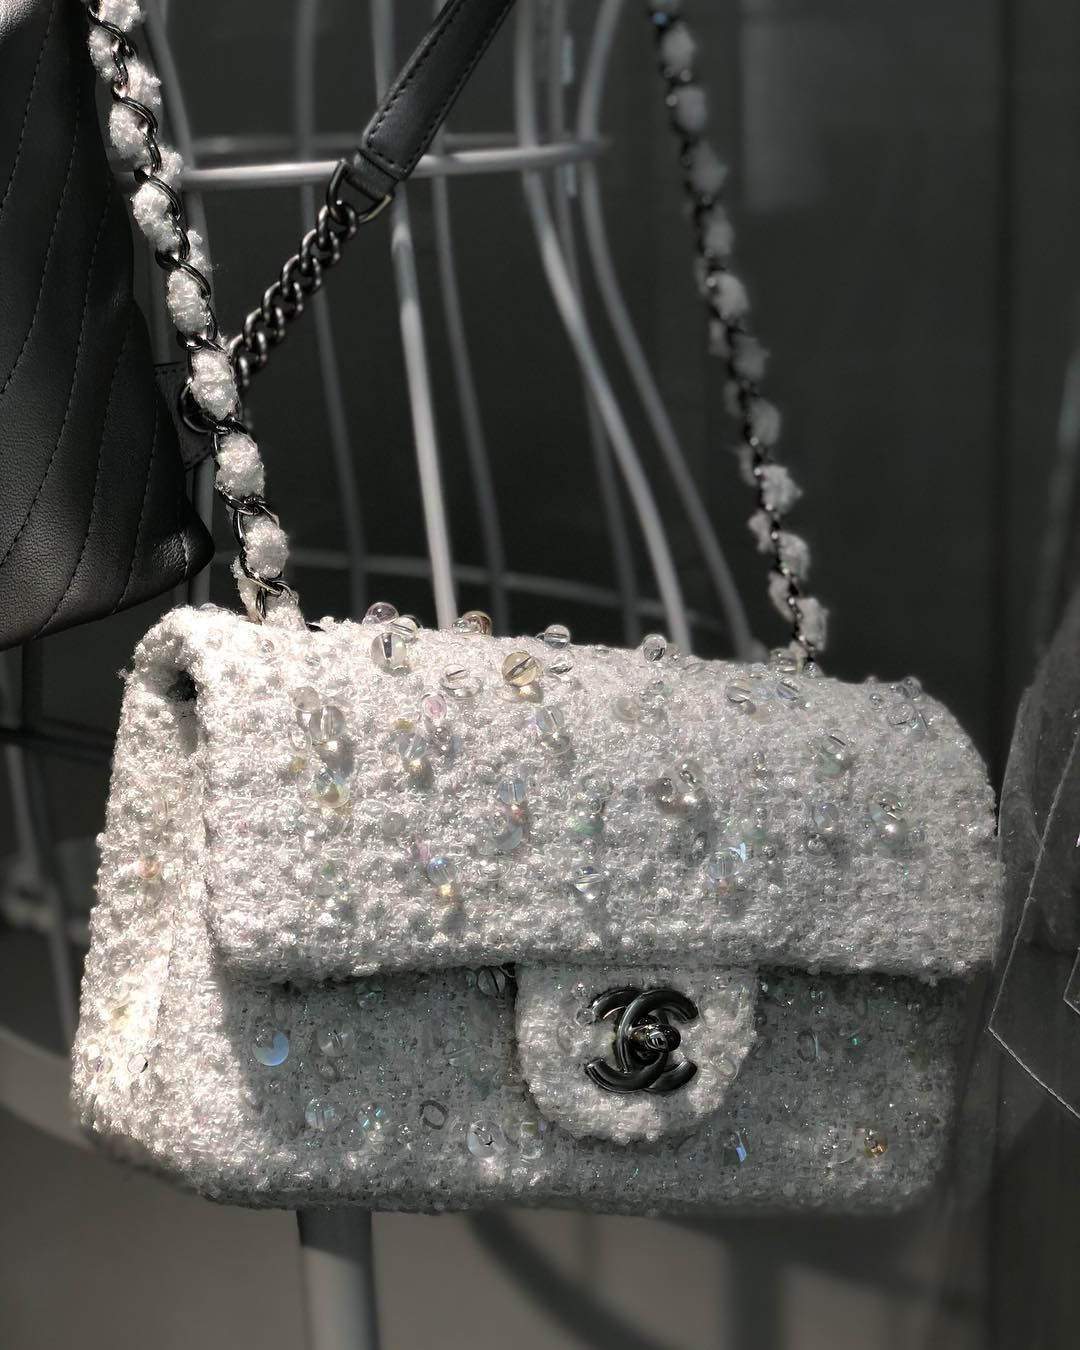 43f5ee4b8ebc The Chanel Classic Flap Bag with embroideries. Feels like snow flakes,  beautiful and clean. Details via here.